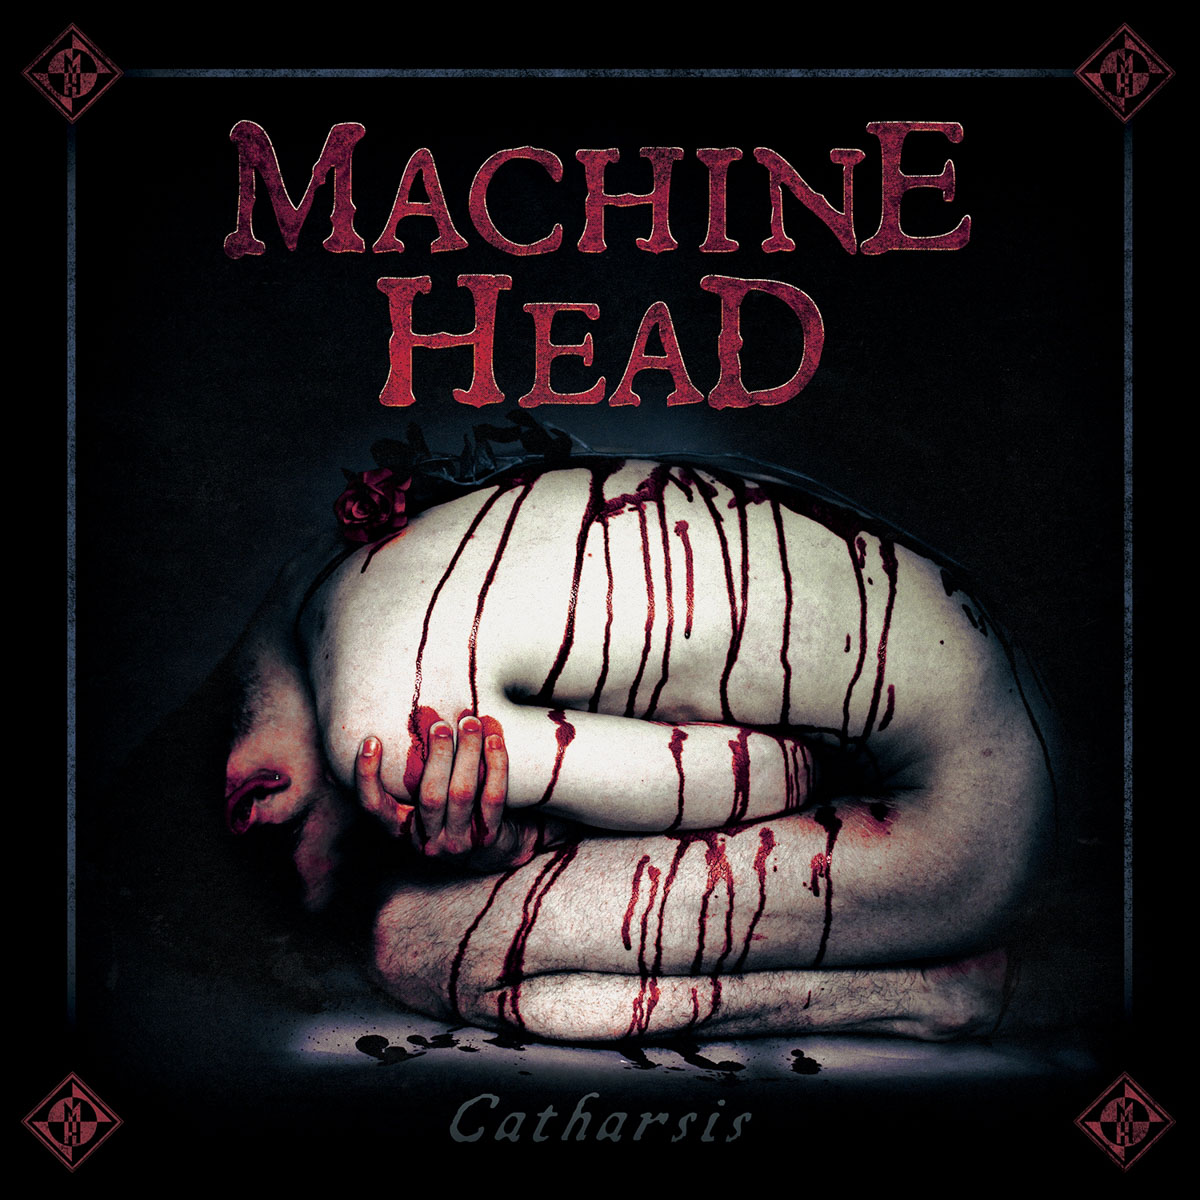 machine-head-catharsis-artwork.jpg